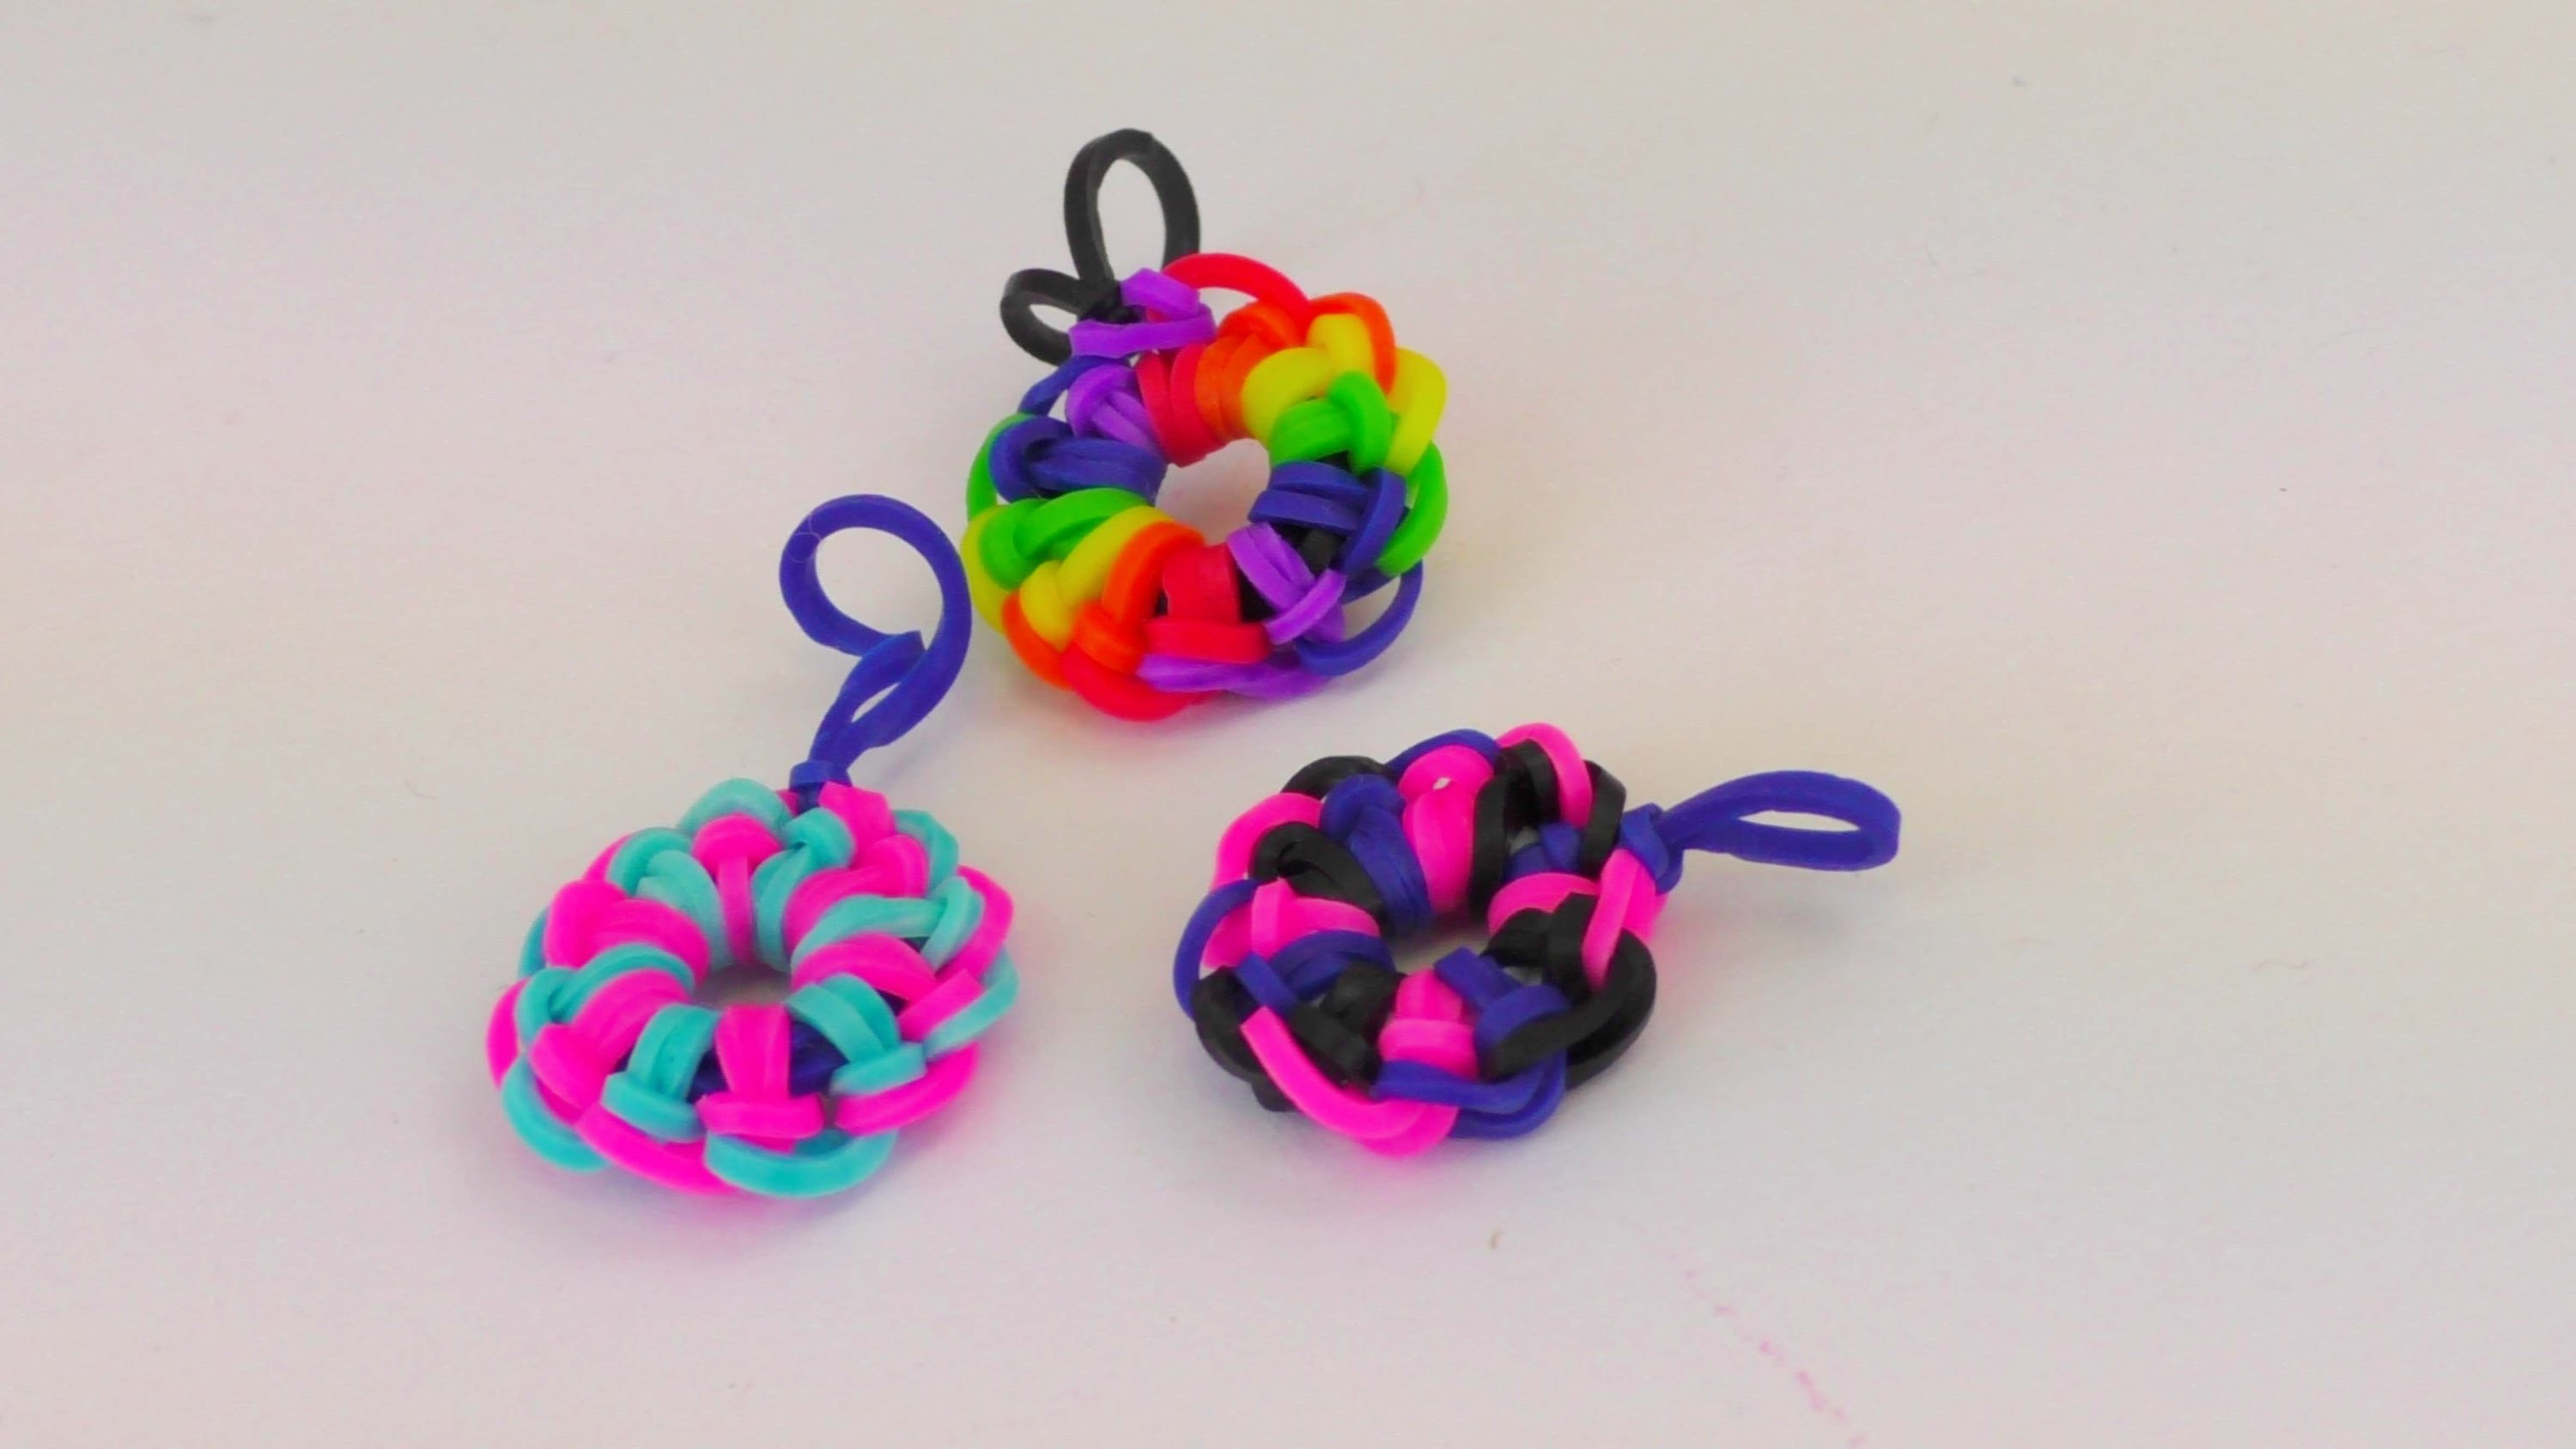 Rainbow Loom Kreis Anhänger. Loom Bands Circle Charm Tutorial deutsch. Kreis Loom Band deutsch